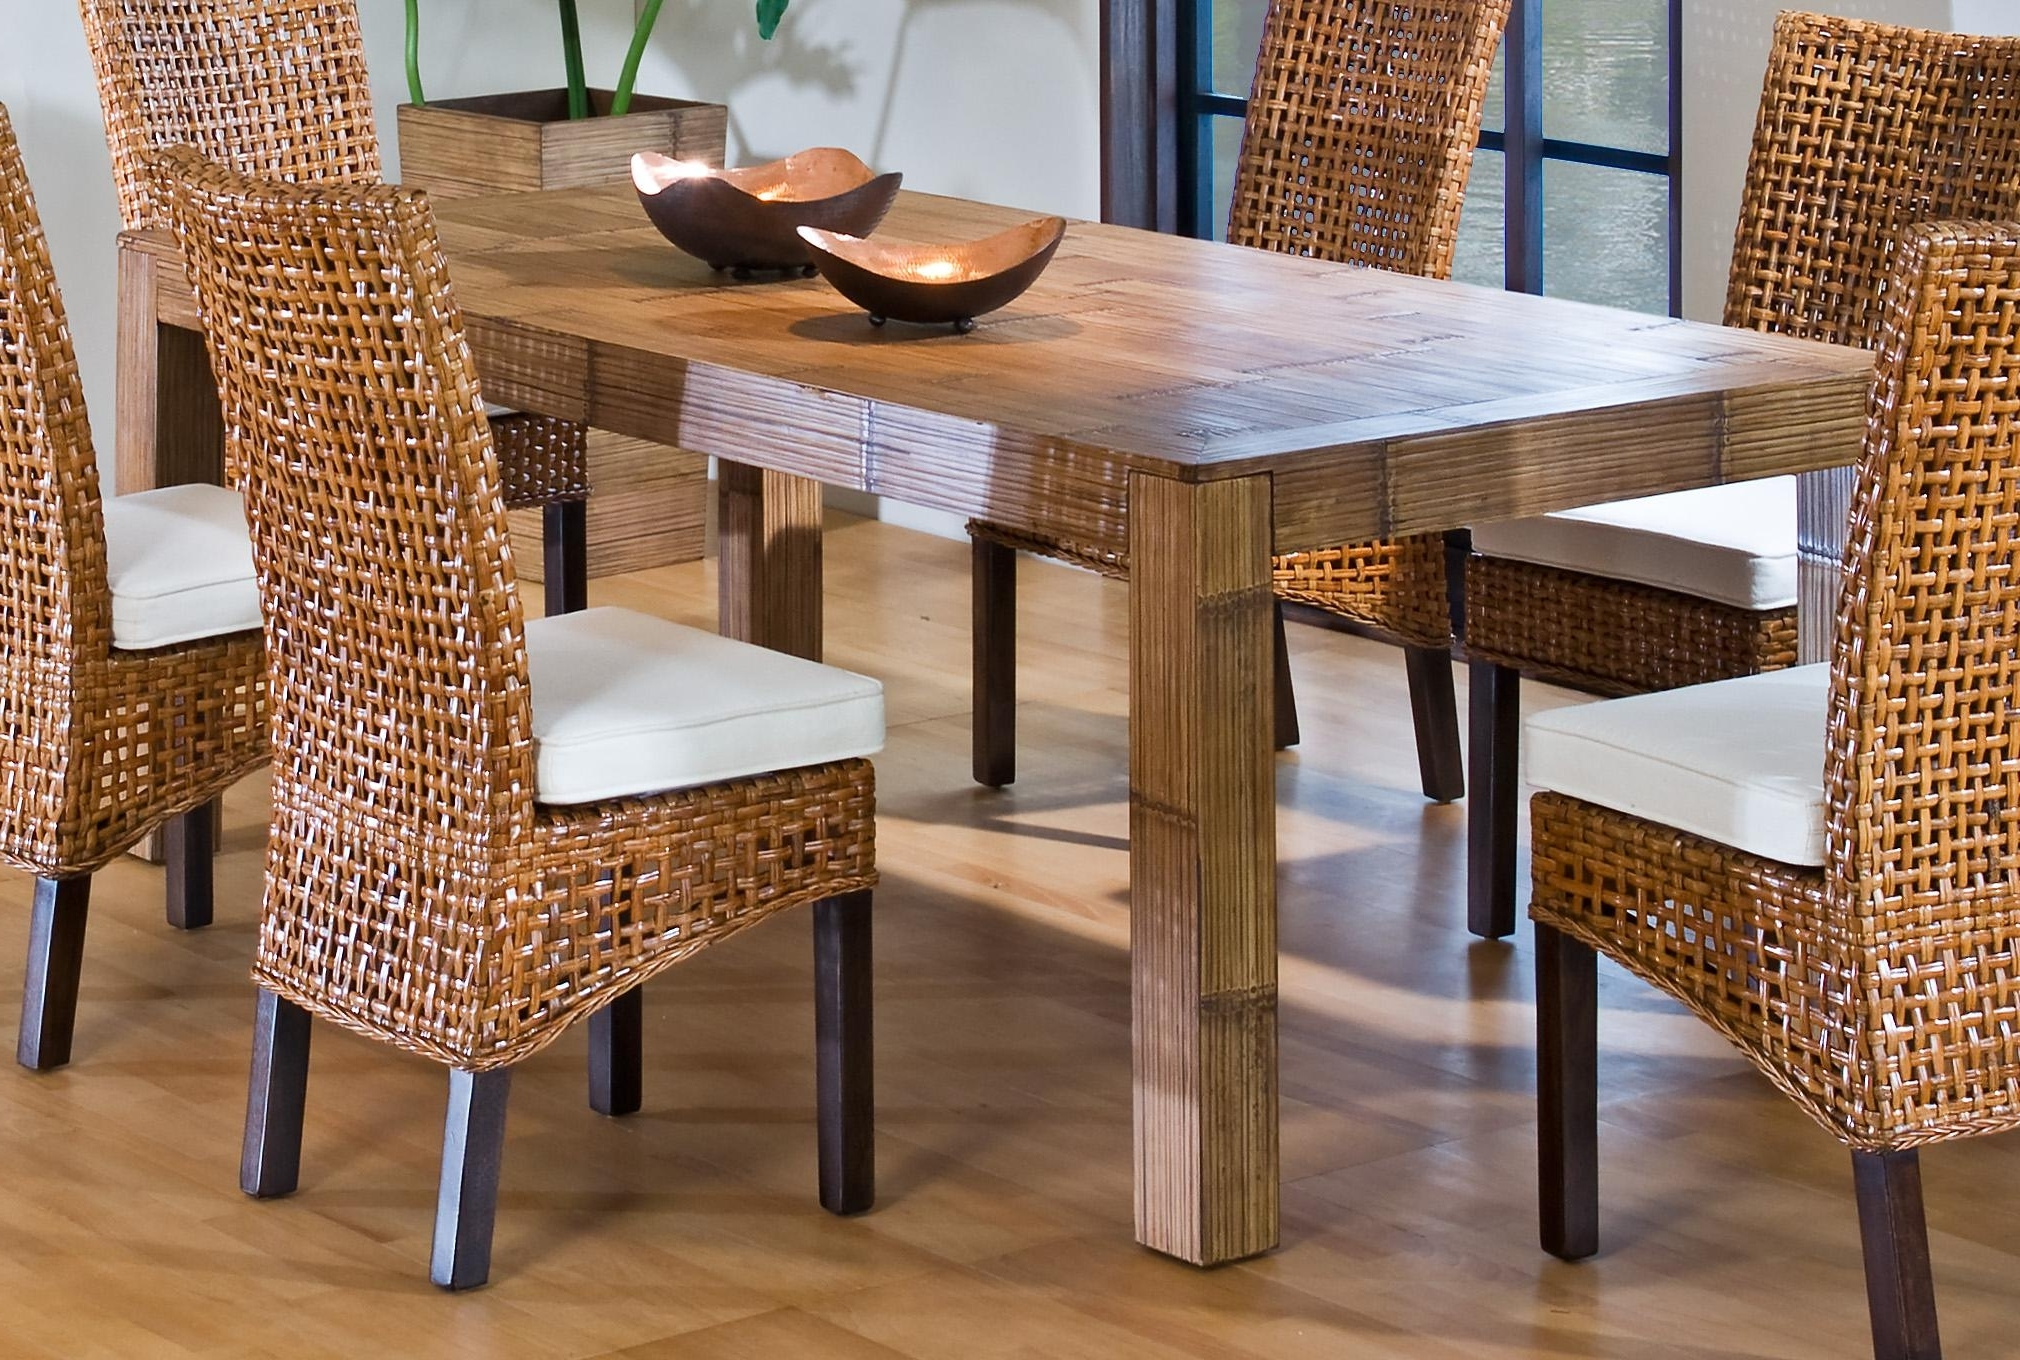 Dining Table Indoor Wicker Dining Table Dining Table And 8 Chairs Regarding Most Current Rattan Dining Tables (View 4 of 25)